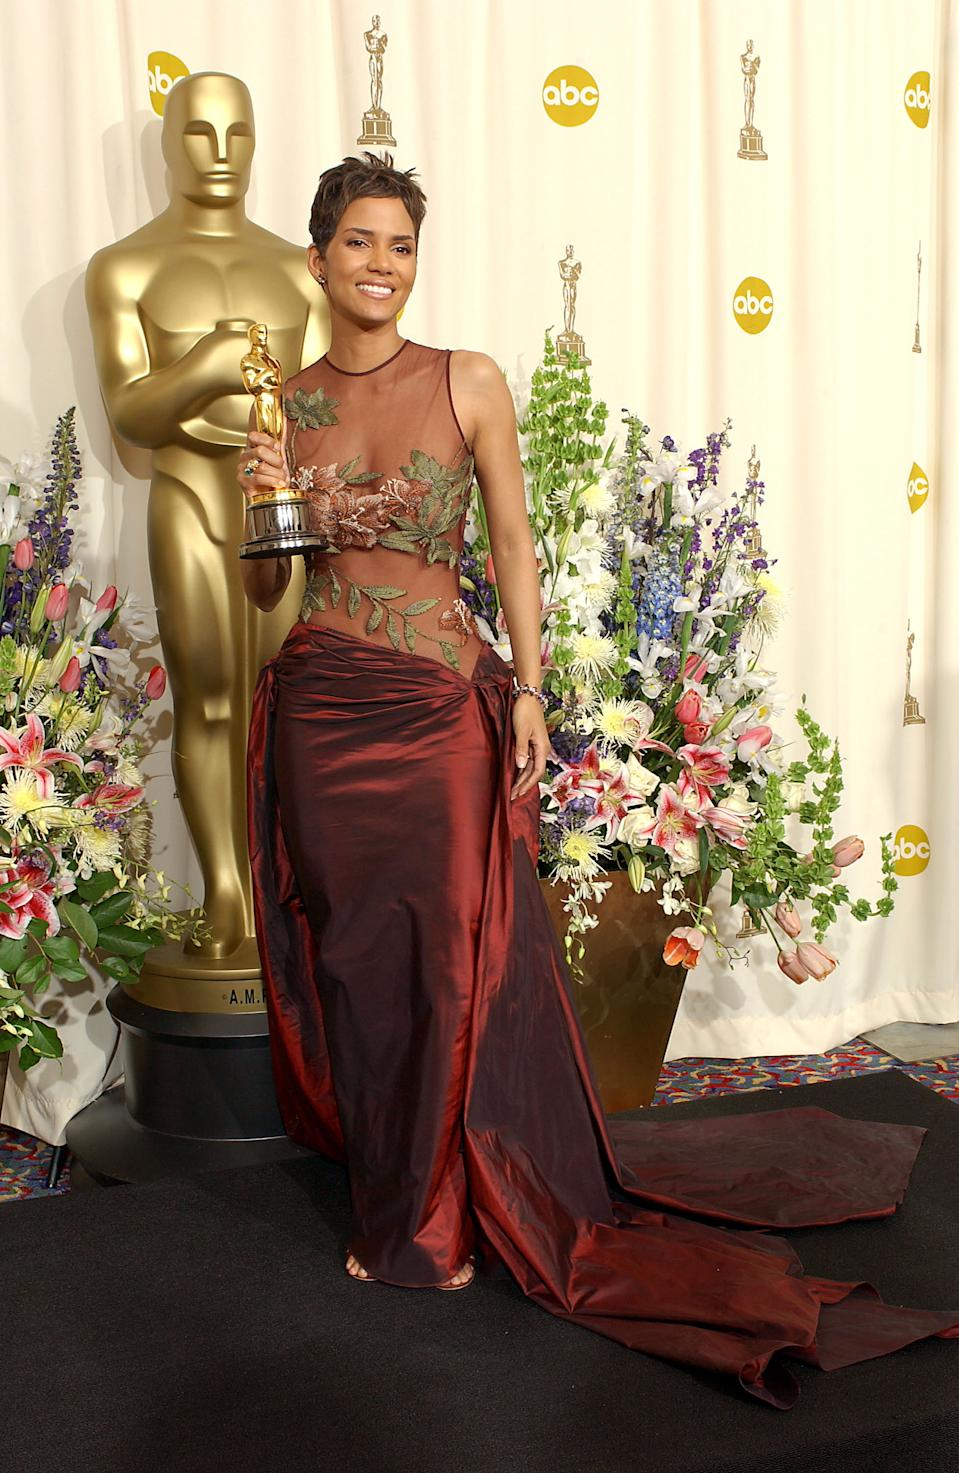 "<p>Berry became the first woman of colour to take home the Best Actress for her role in the gritty drama ""Monster's Ball."" The history-making win, while wearing the strategically embroidered mesh gown, skyrocketed Elie Saab to international fame, putting the Lebanese designer on the map as the go-to brand for head-turning couture.</p>"